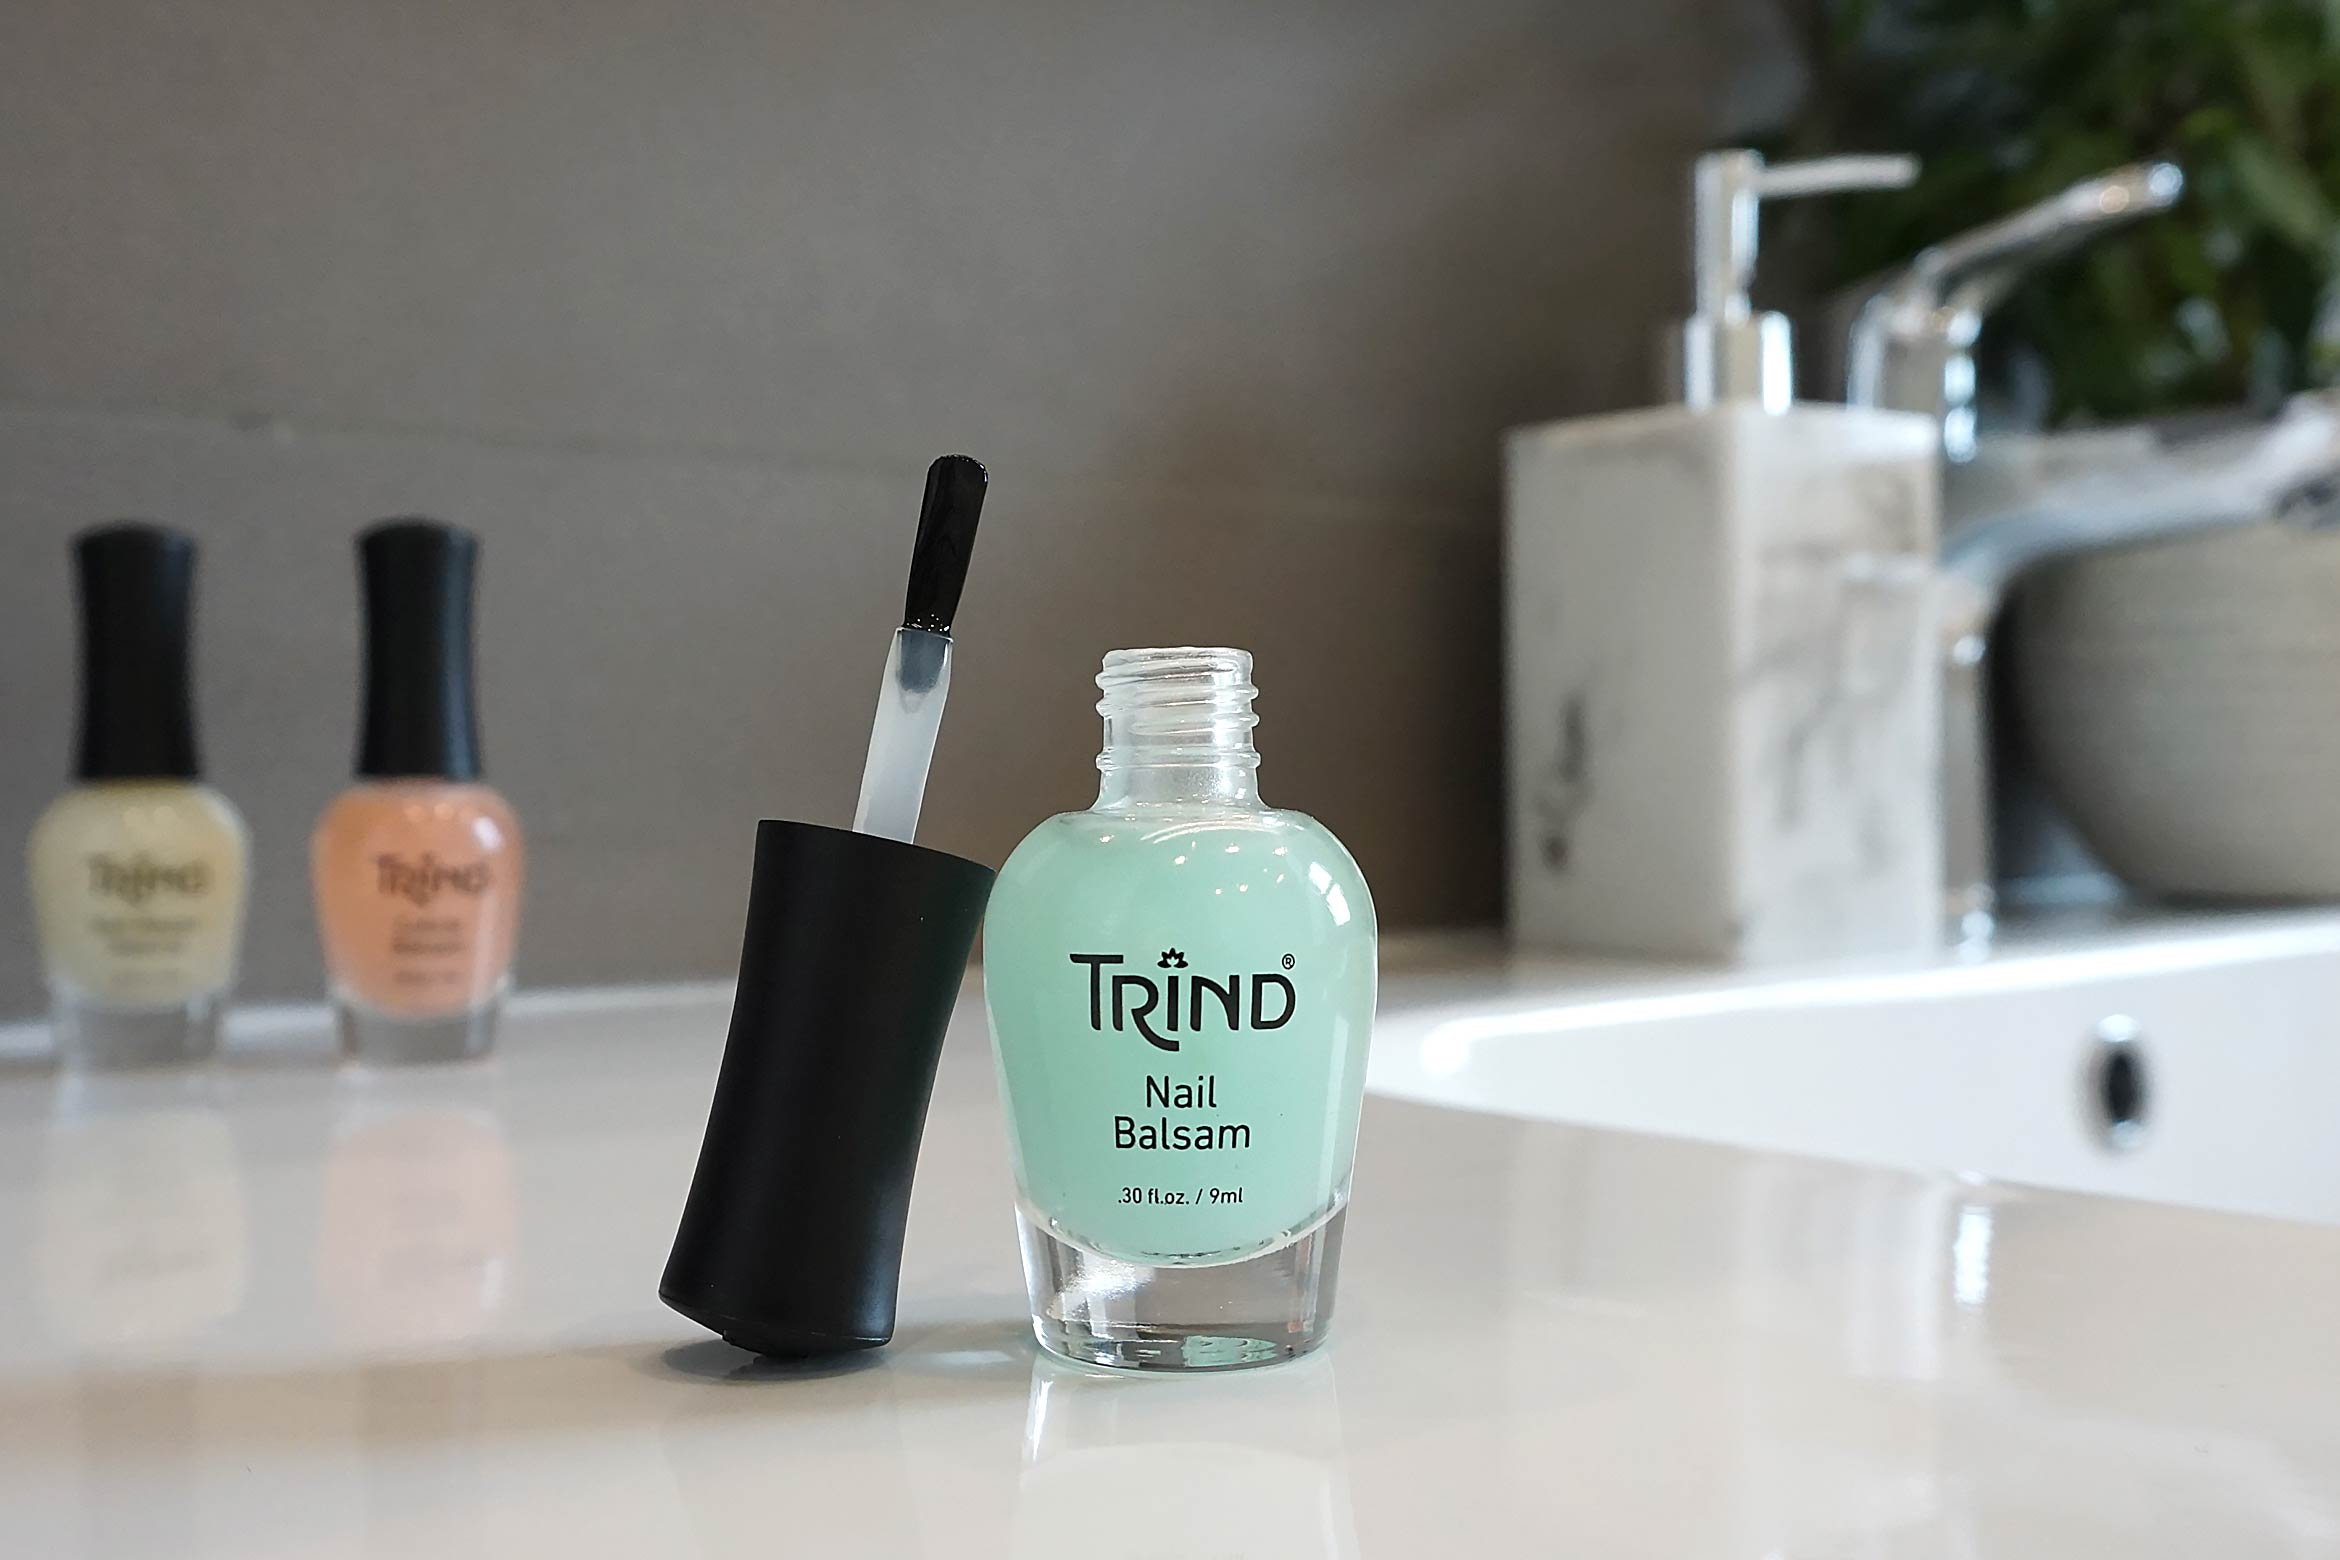 trind nail balsam review-1